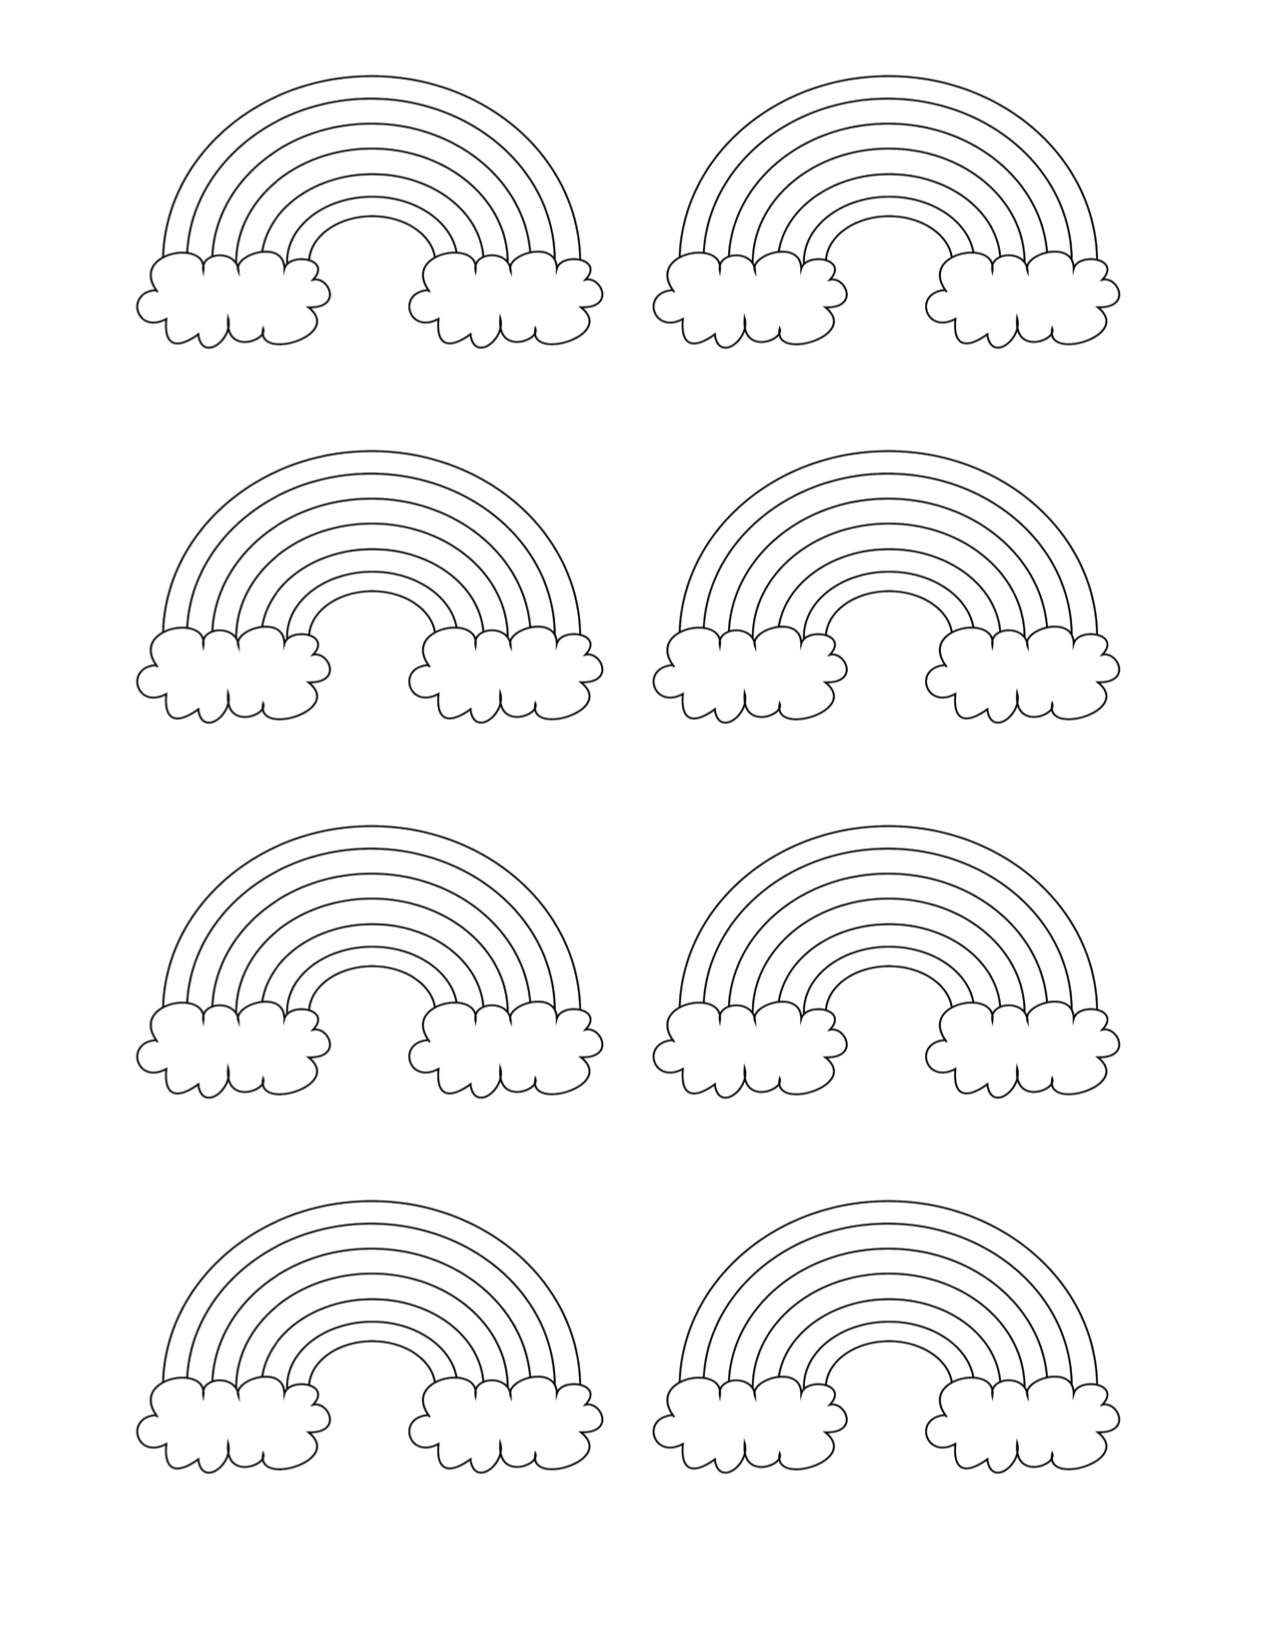 Cute Rainbow Patterns with Clouds - Free Template You Can ...